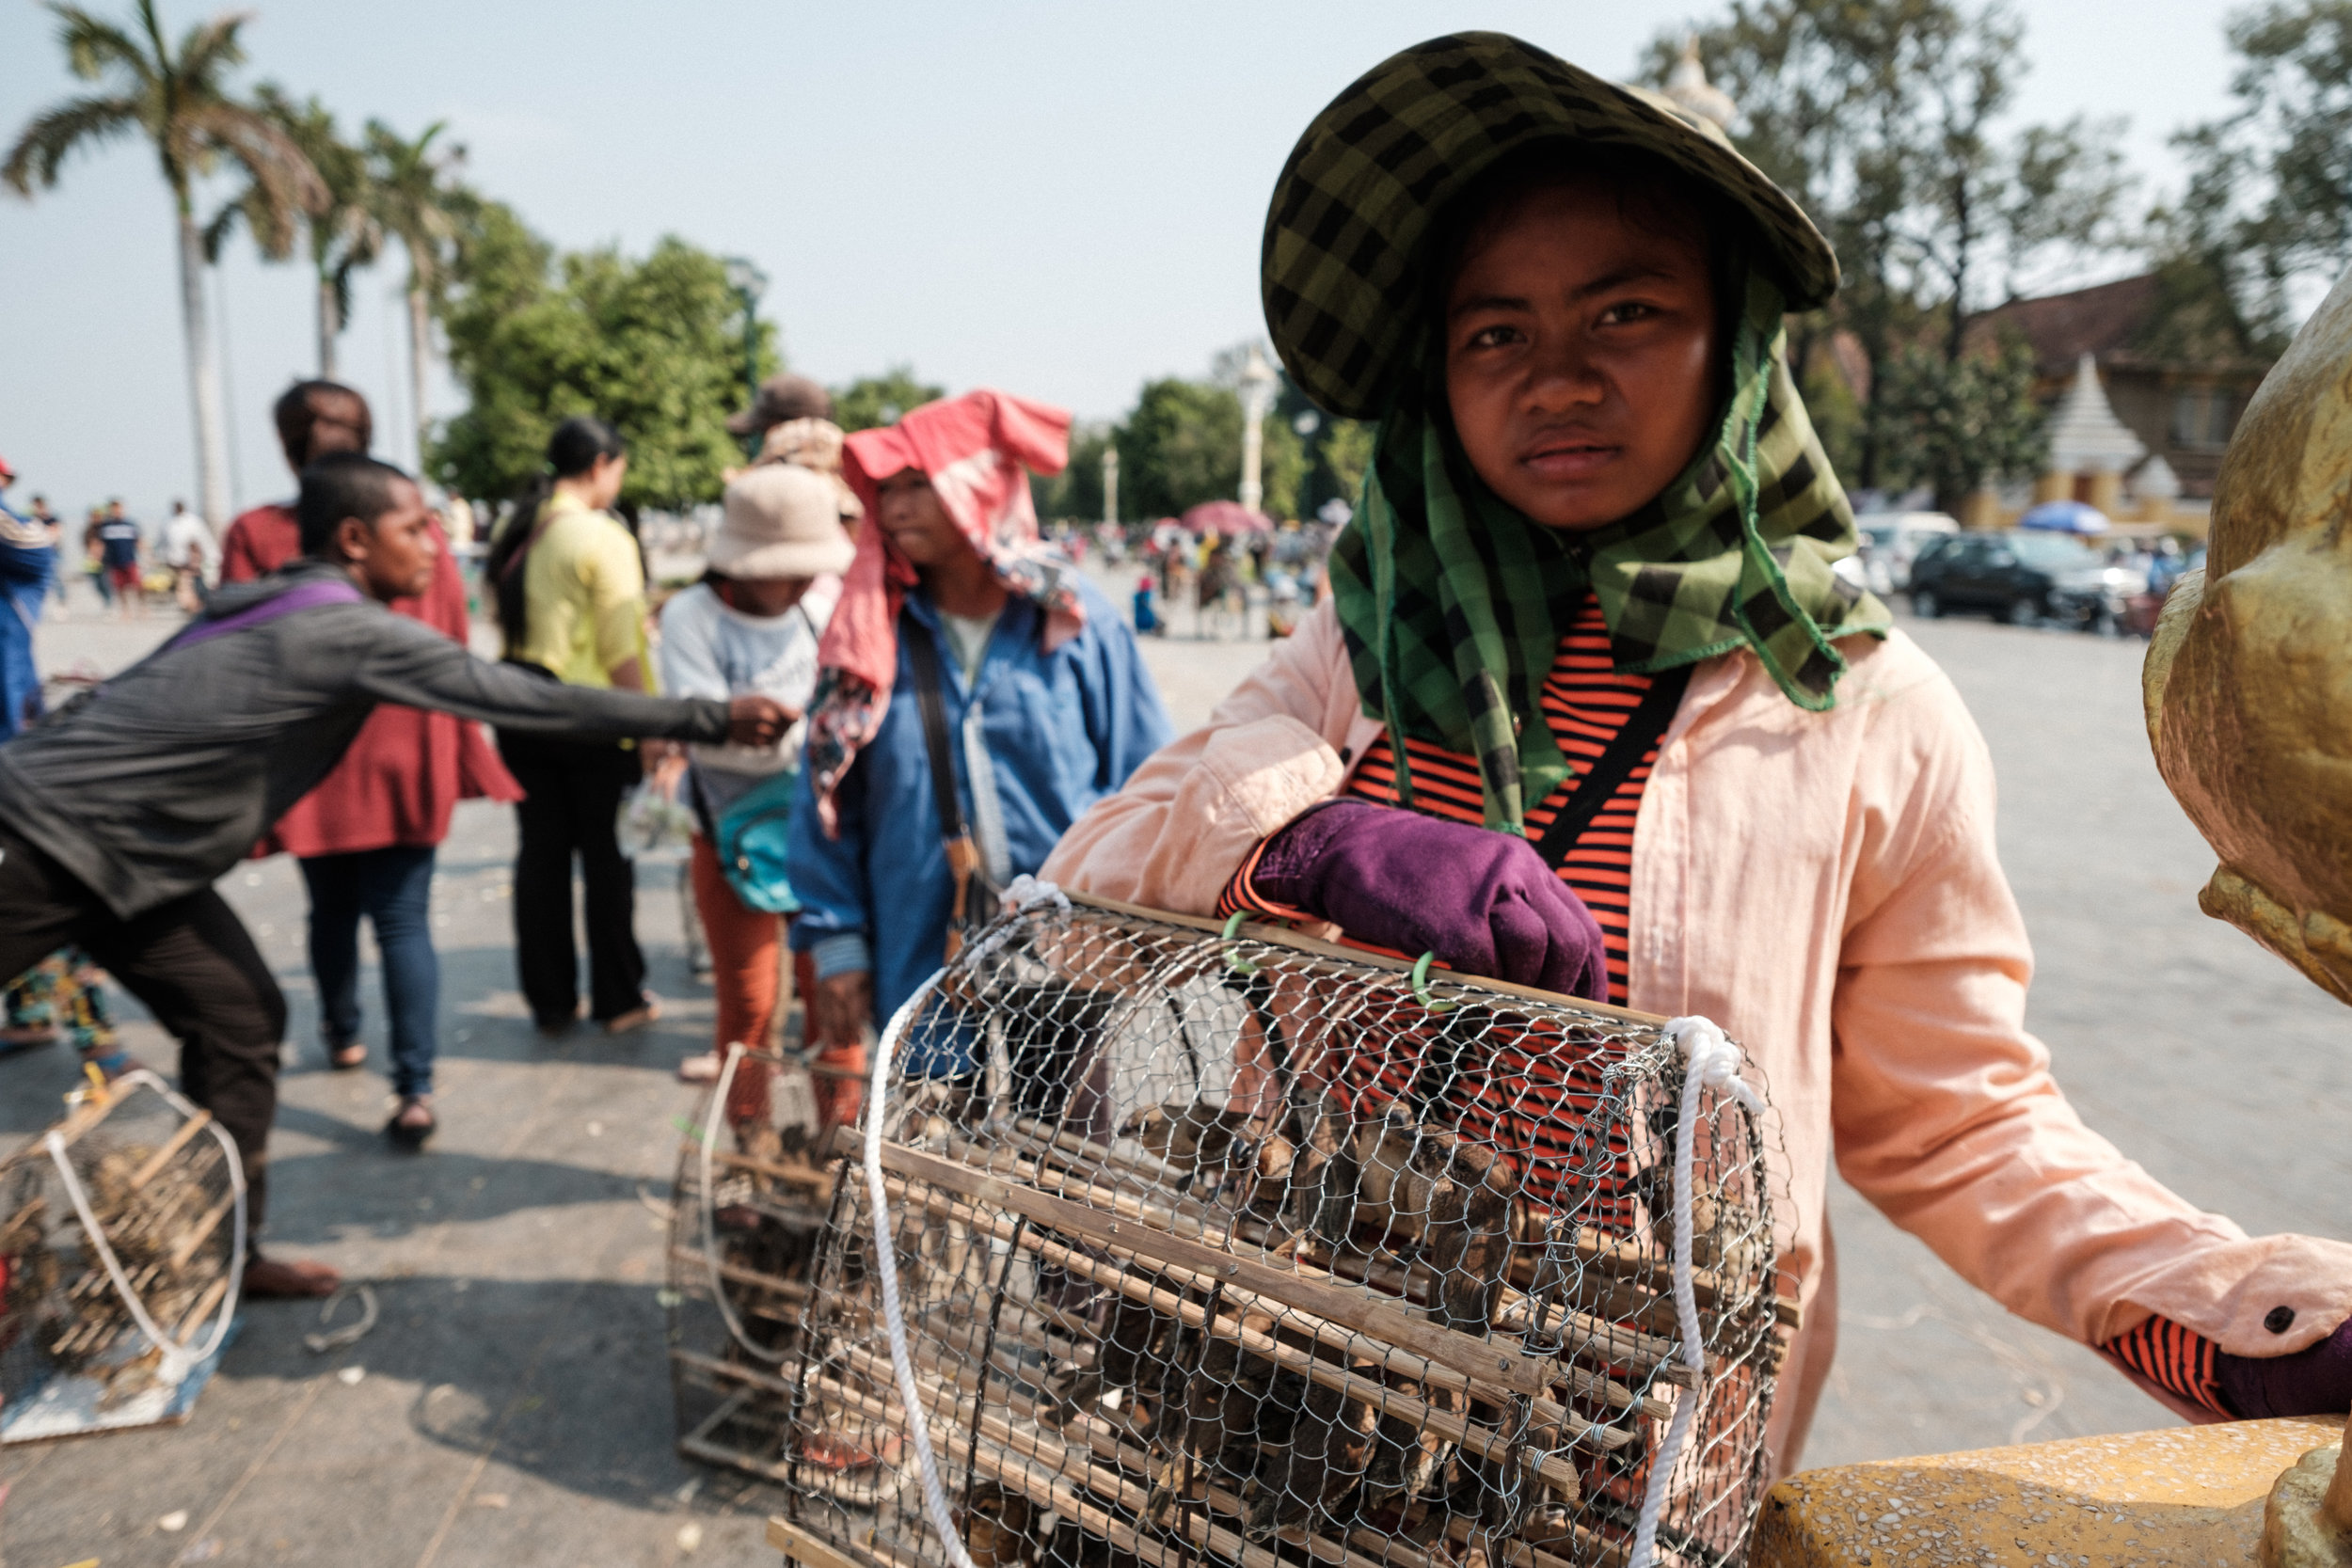 Birds in cages are for sale as offerings to buddha during a ceremony in Phnom Penh Cambodia